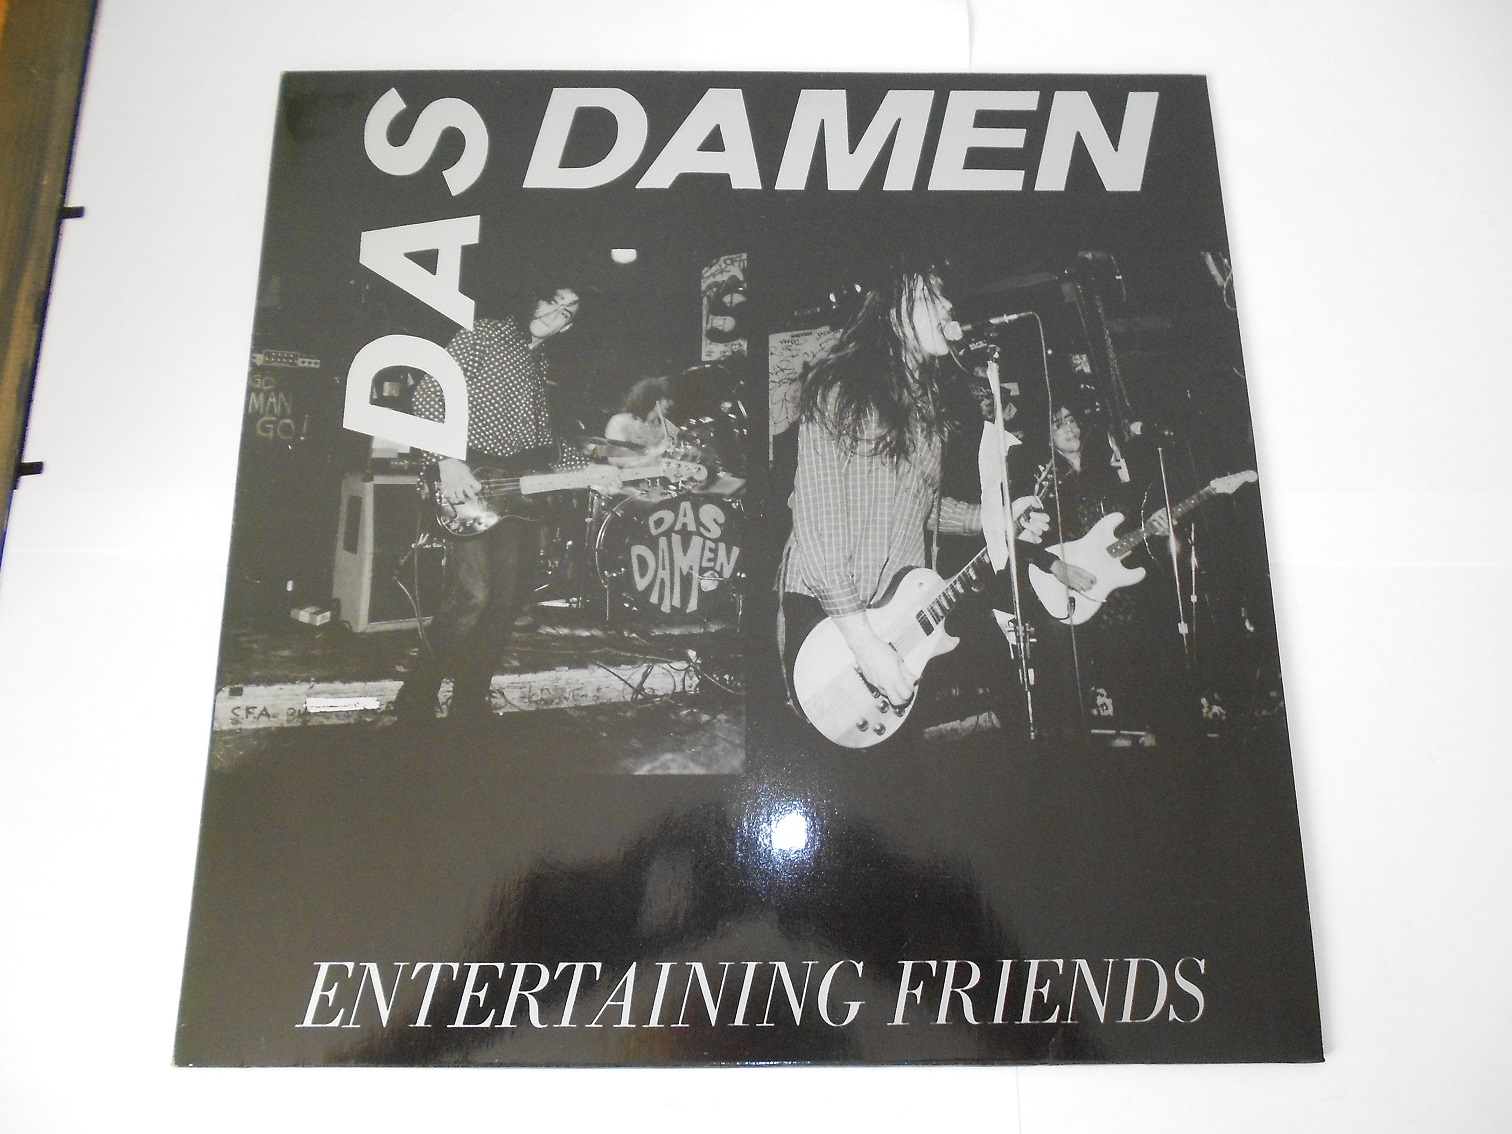 Das Damen - Entertaining Friends